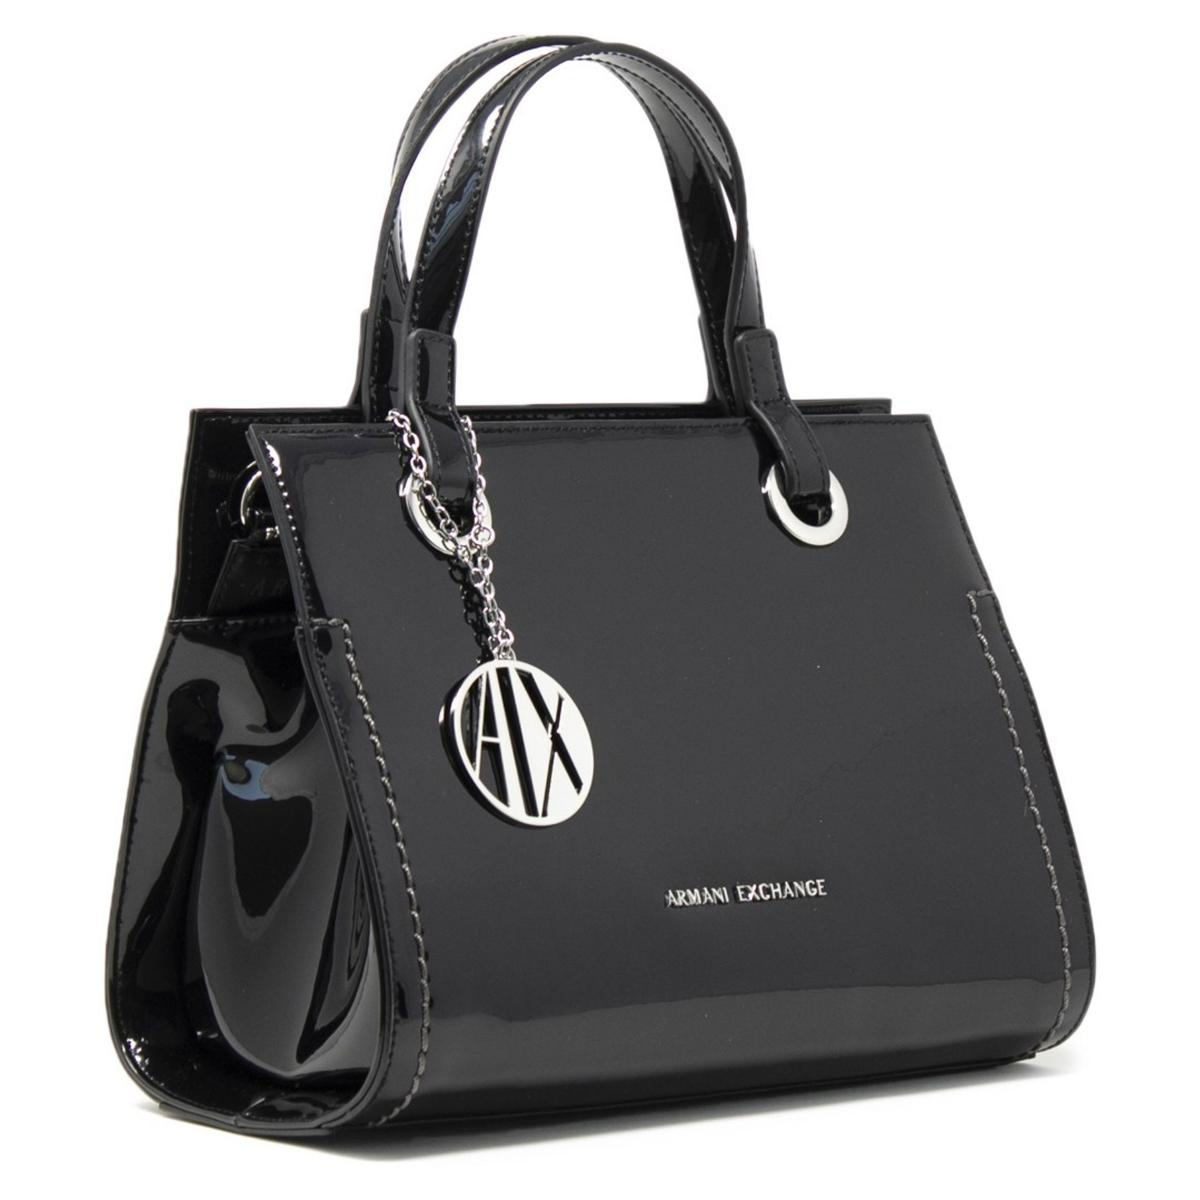 Borsa Armani Exchange Small Shopping da donna rif. 942270 CC713